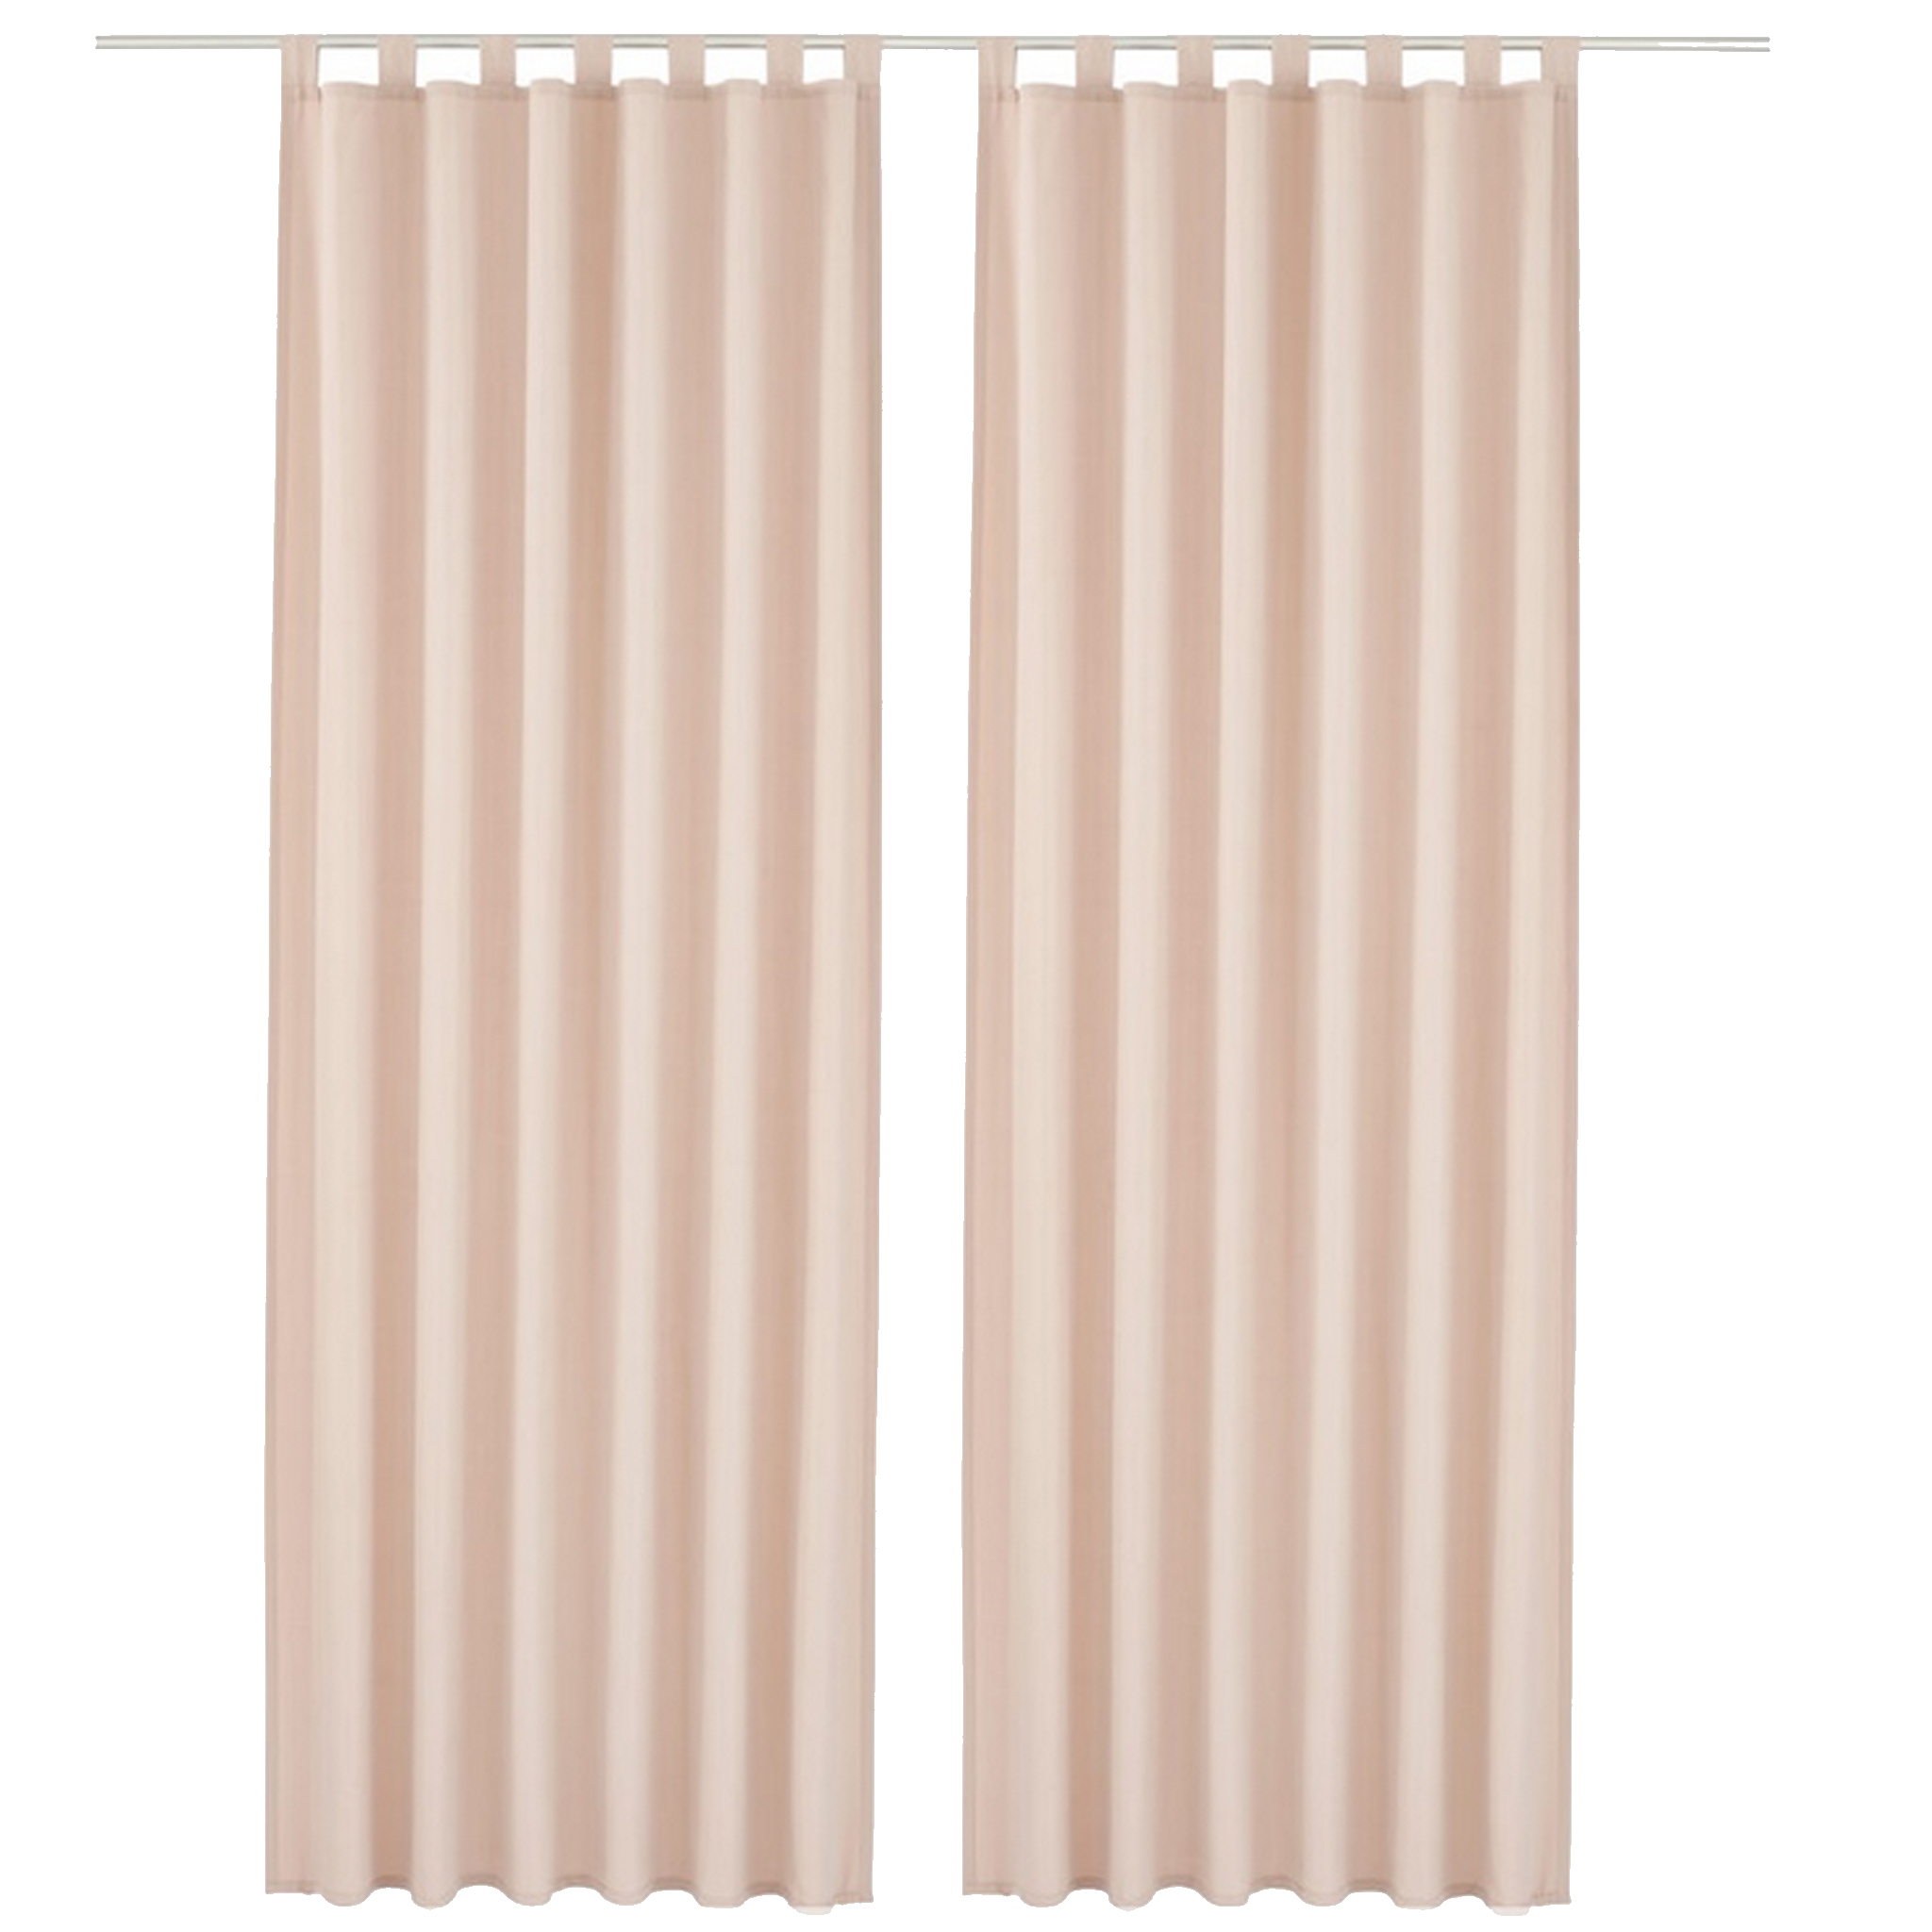 beyond of two room size full for clearance story threshold treatments windows design catalogue target kitchen ideas window panel drapery curtains shades kohls short curtain bath and living cu bed treatment walmart modern